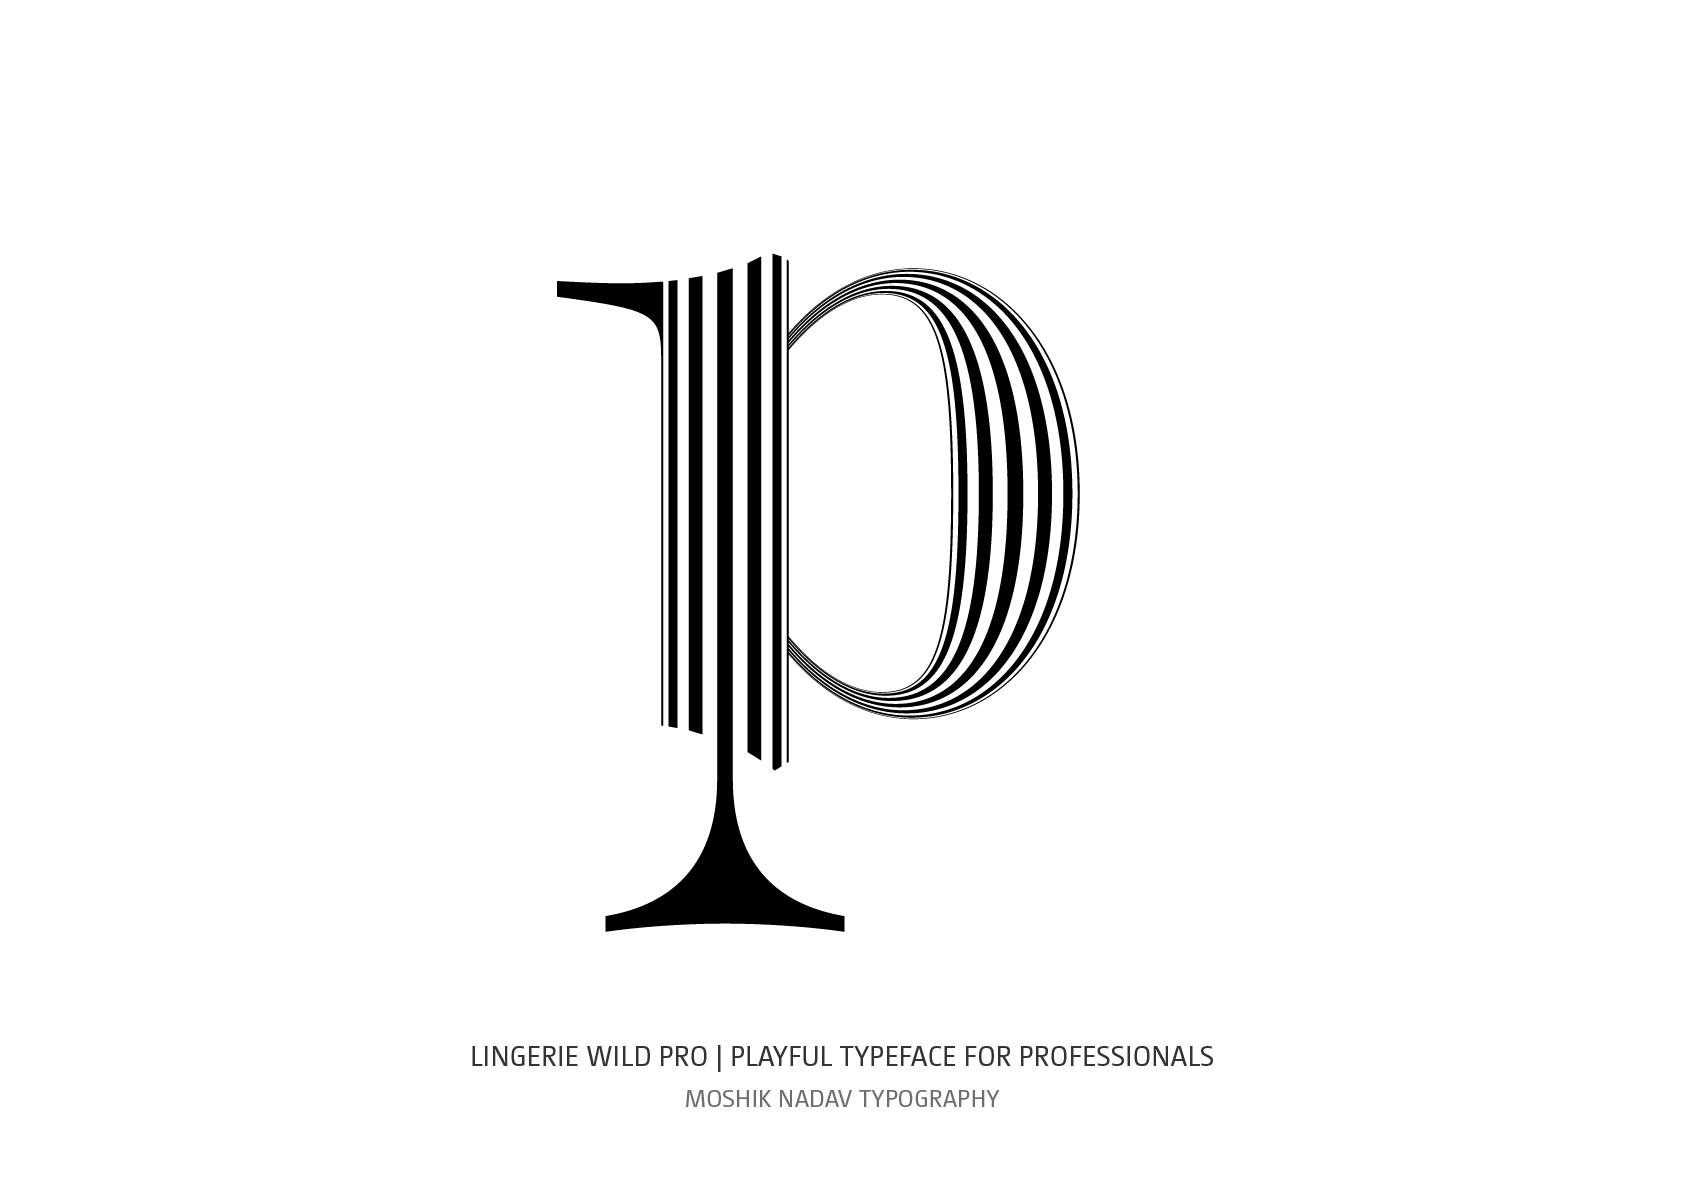 Lowercase p made with the new  Lingerie Wild Pro Typeface by Moshik Nadav Fashion and luxury typography NYC